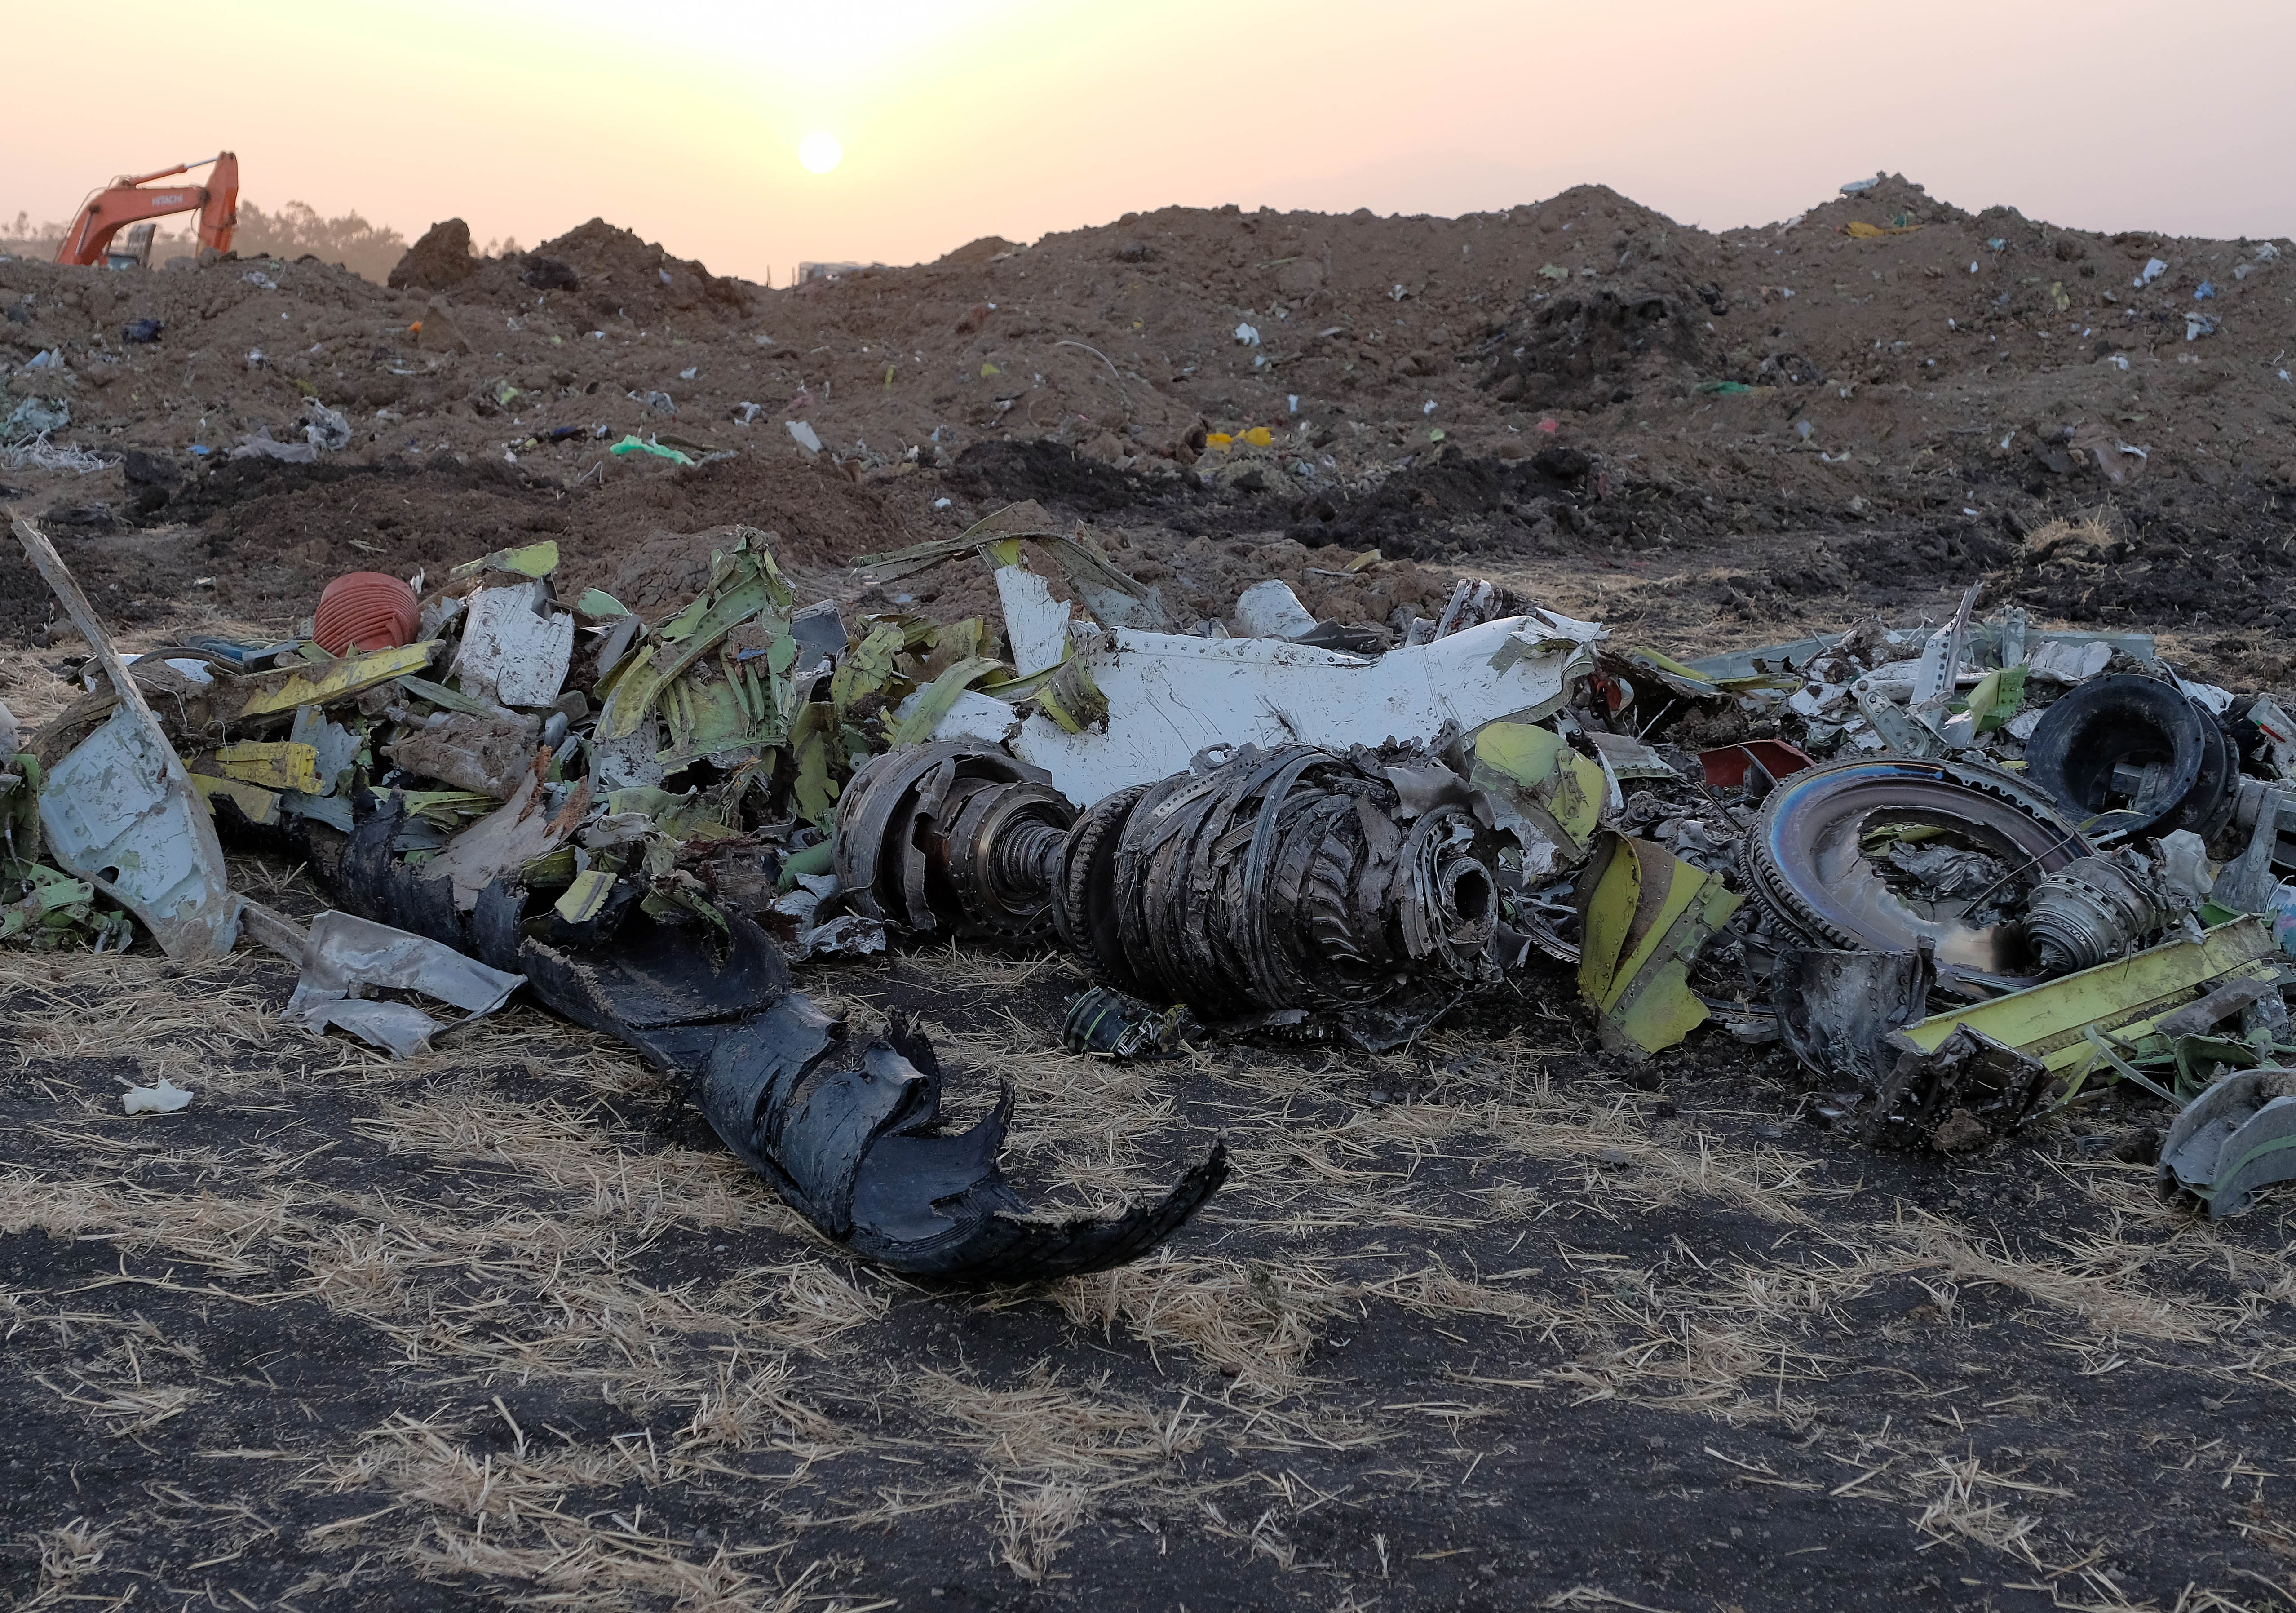 Parts of an engine and the landing gear lie in a pile after being gathered by workers during the continuing recovery efforts at the crash site of Ethiopian Airlines flight ET302 on March 11, 2019, in Bishoftu, Ethiopia. (Getty)